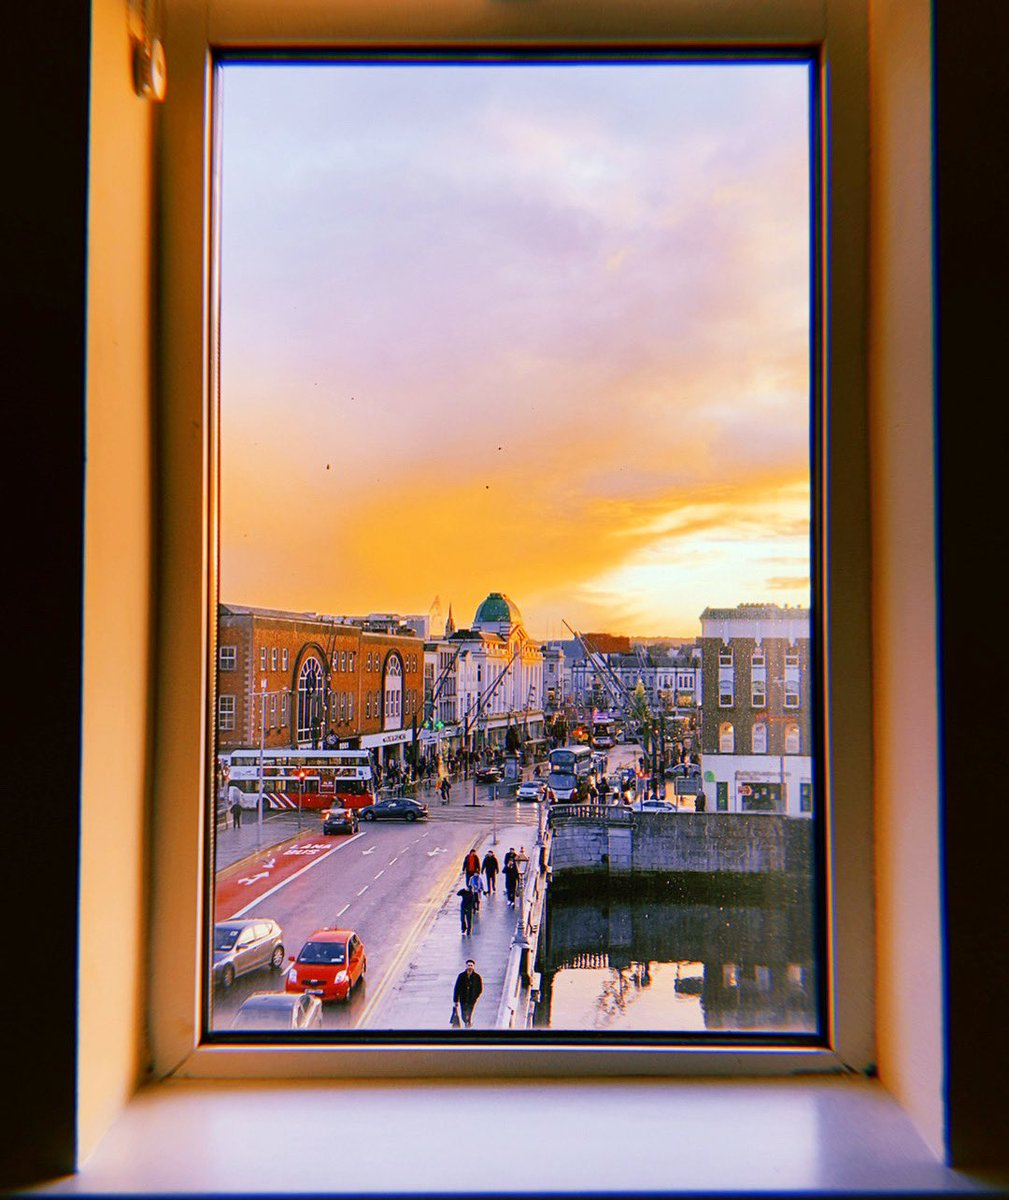 The view from Classroom 19 🖼 ⠀ ⠀ Cork really is a work of art ♥️⠀ ⠀ #CorkEnglishCollege #CorkCity #PureCork #LoveCork